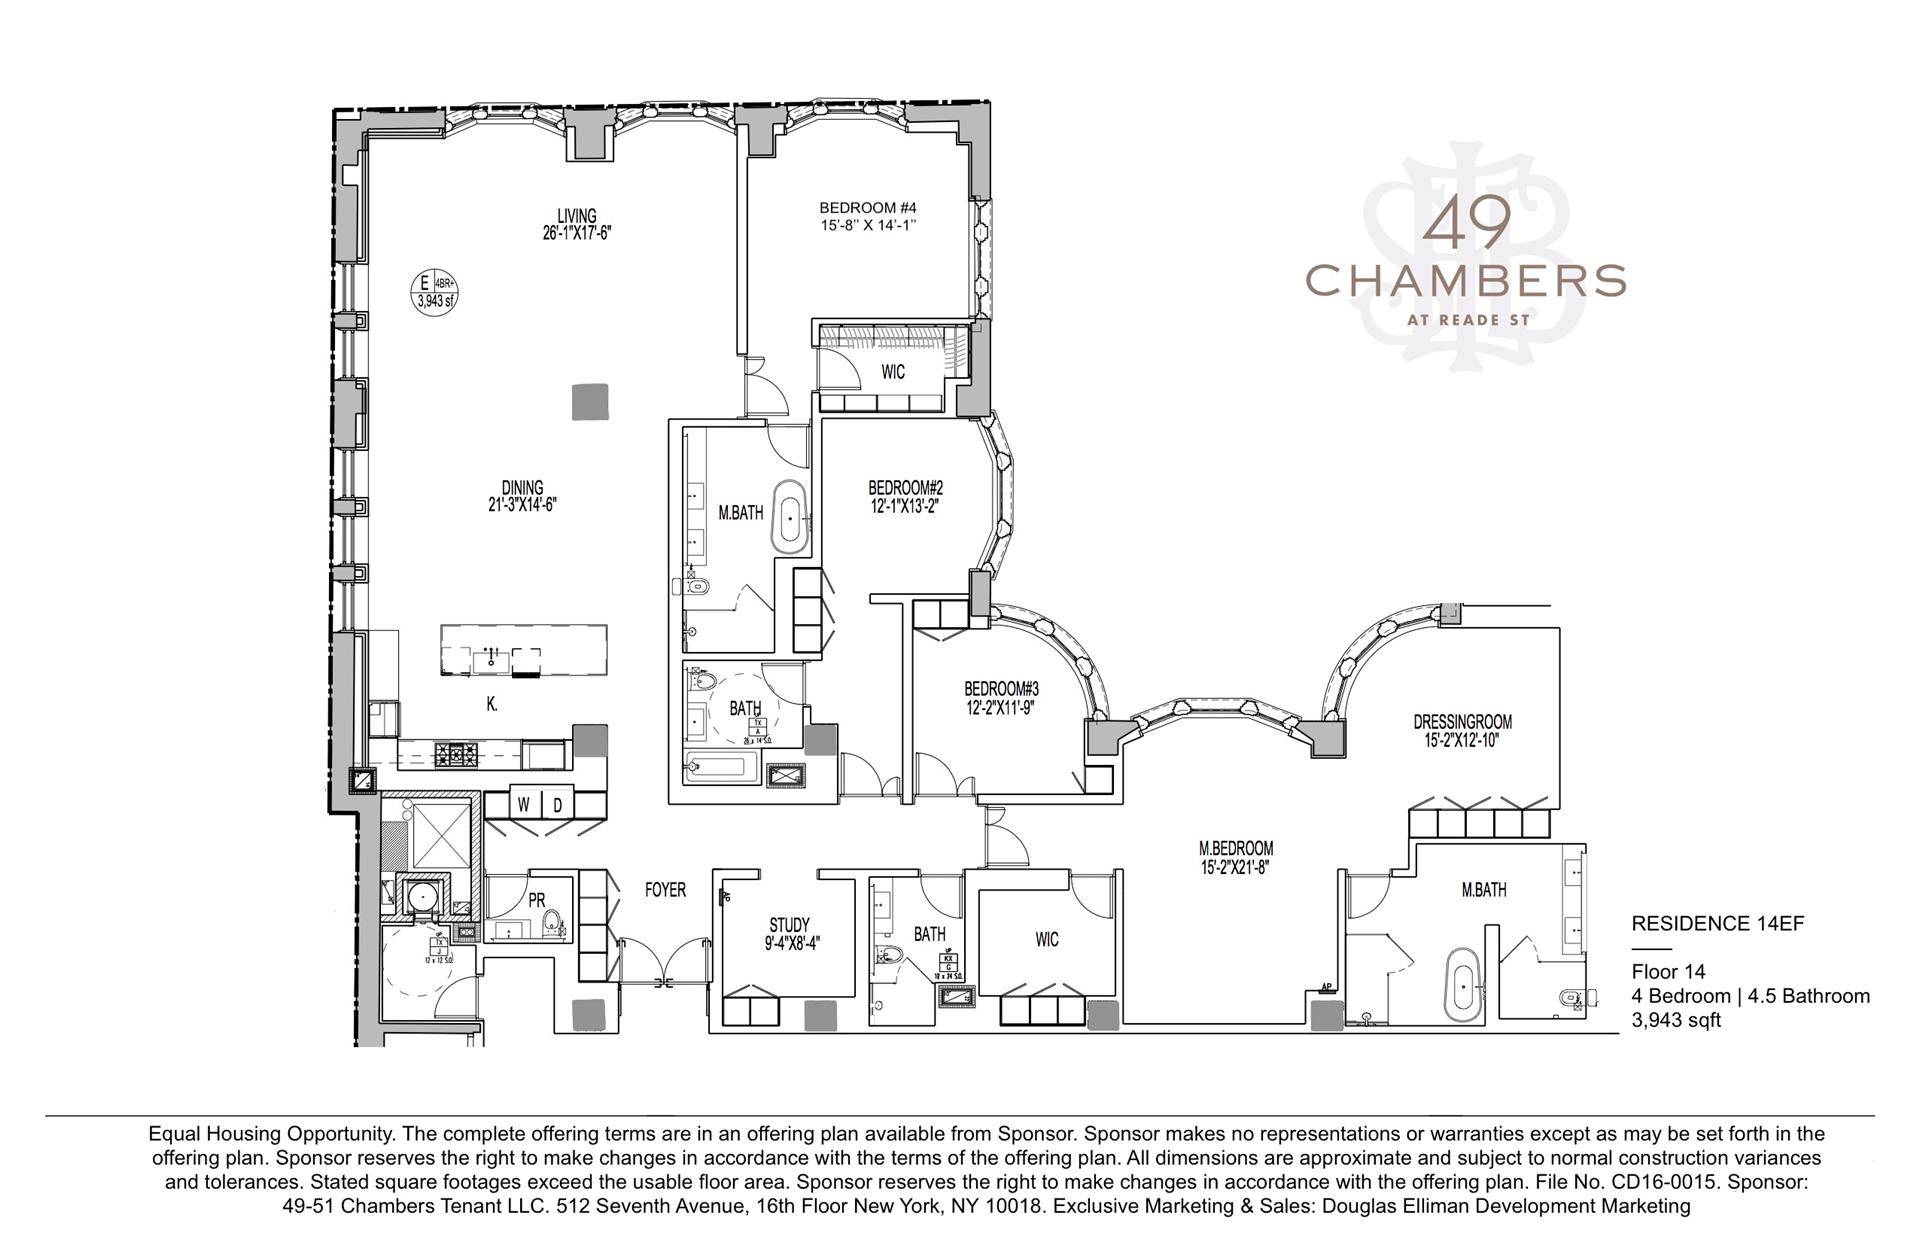 Floor plan of 49 Chambers St, 14EF - TriBeCa, New York